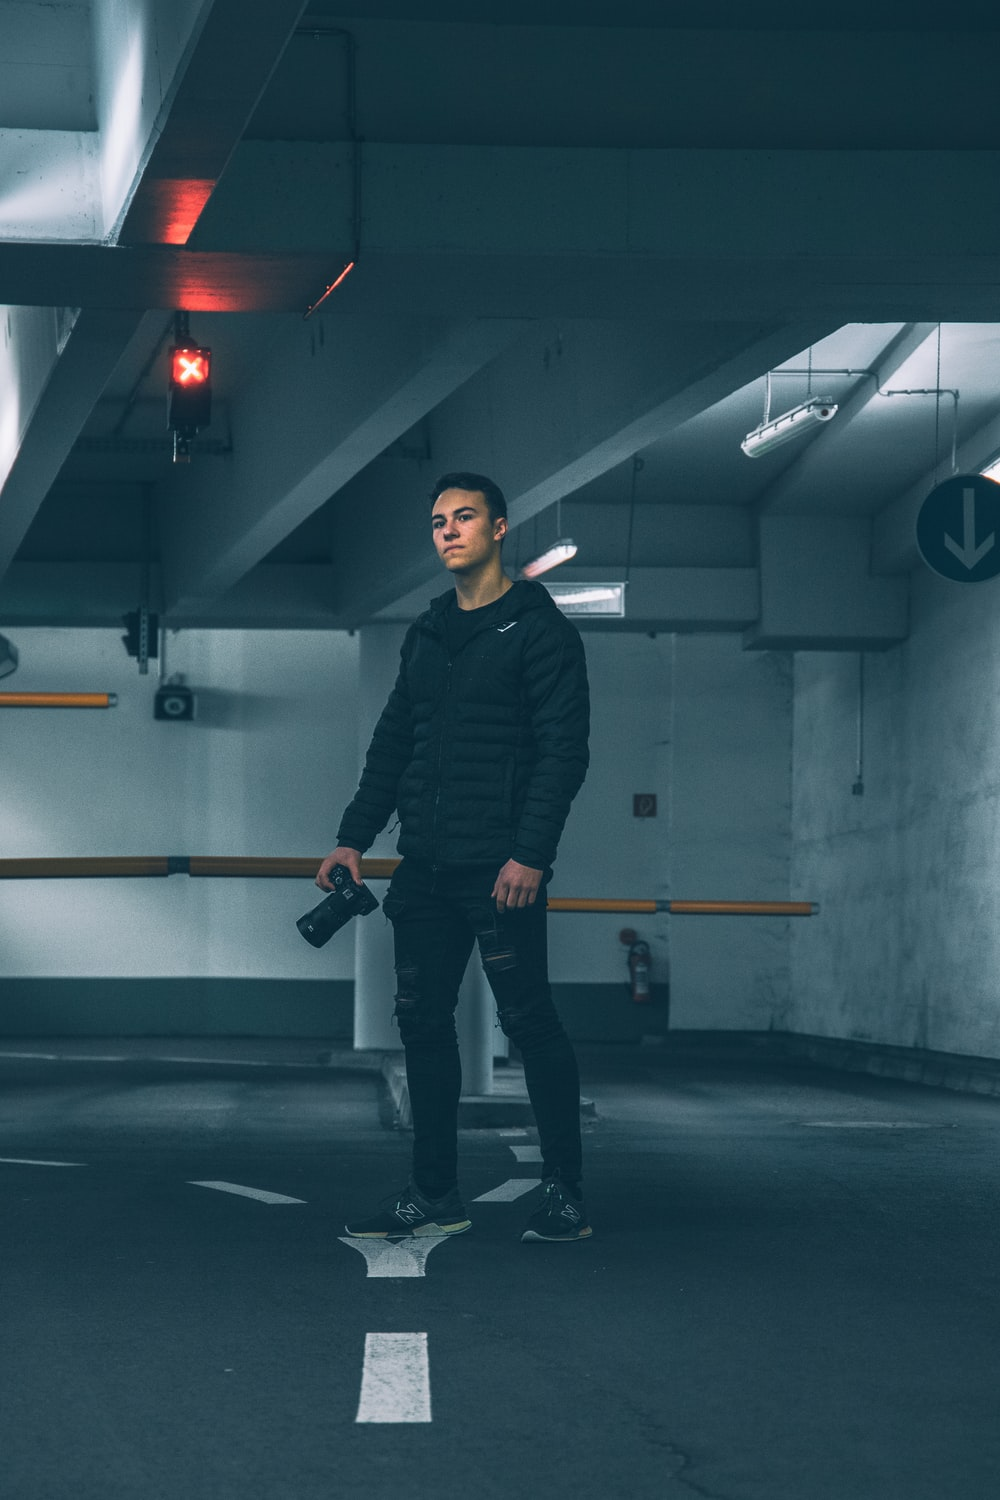 man in black jacket and black pants holding black and gray exercise equipment